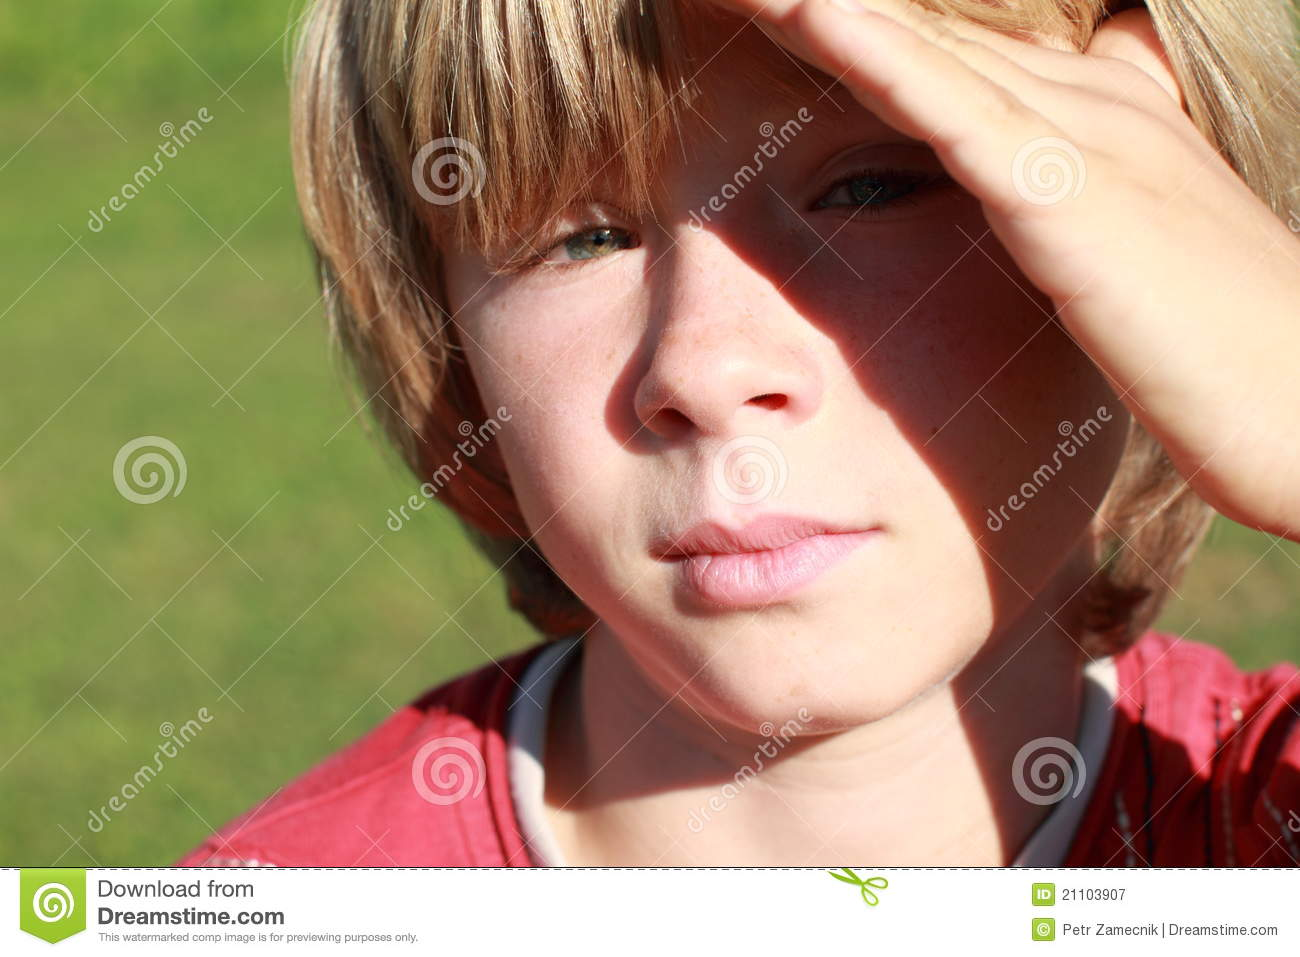 Serious Boy Royalty Free Stock Photography   Image  21103907